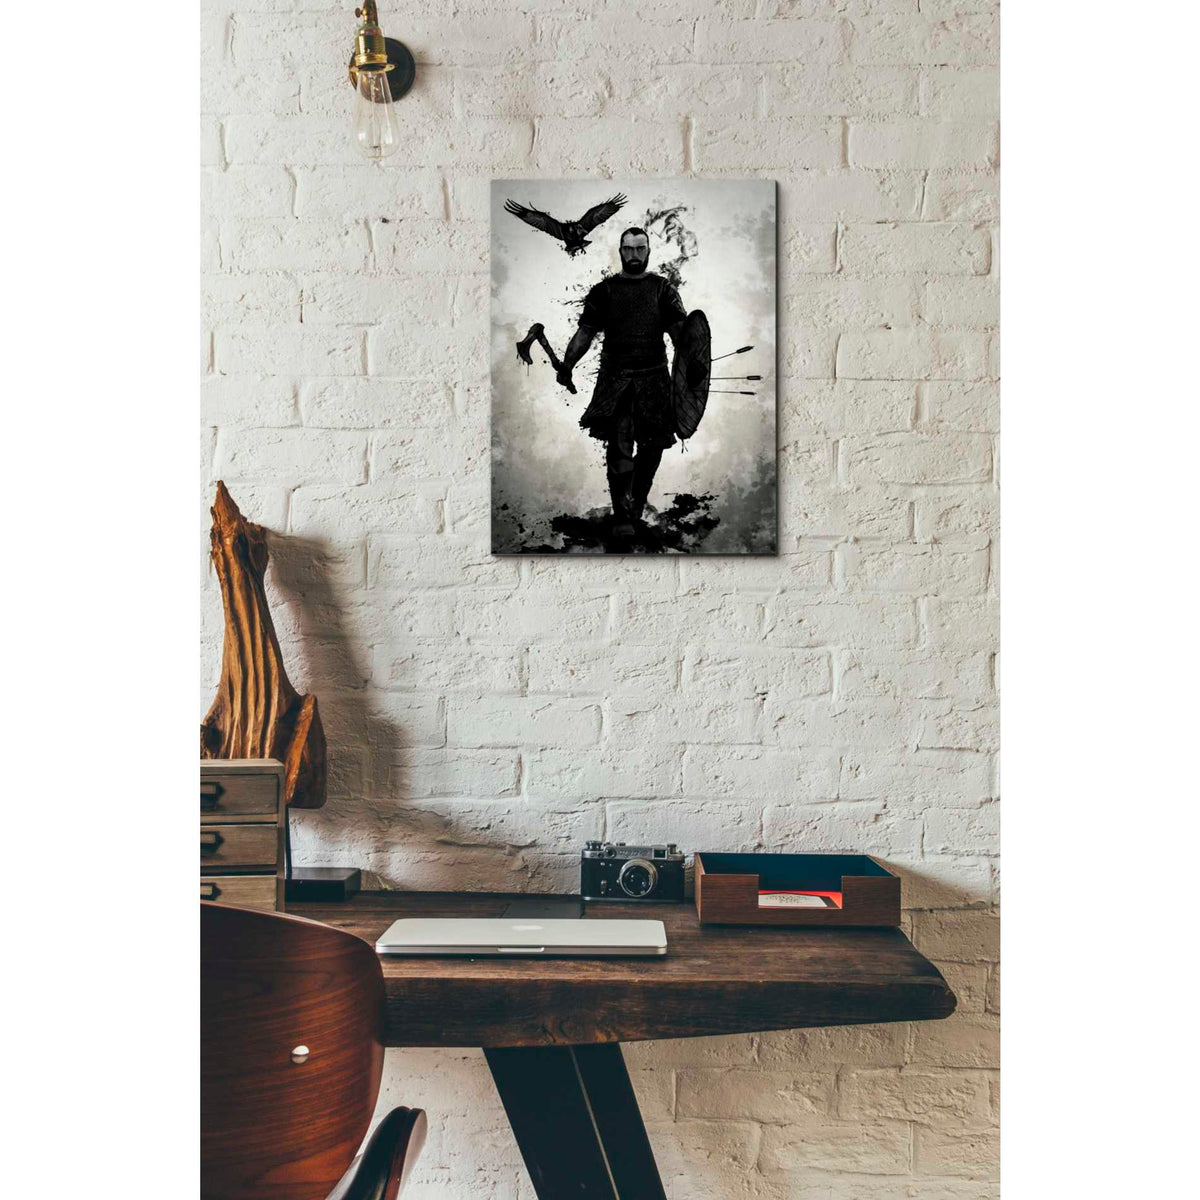 Cortesi Home 'To Valhalla' by Nicklas Gustafsson, Canvas Wall Art,12 x 16